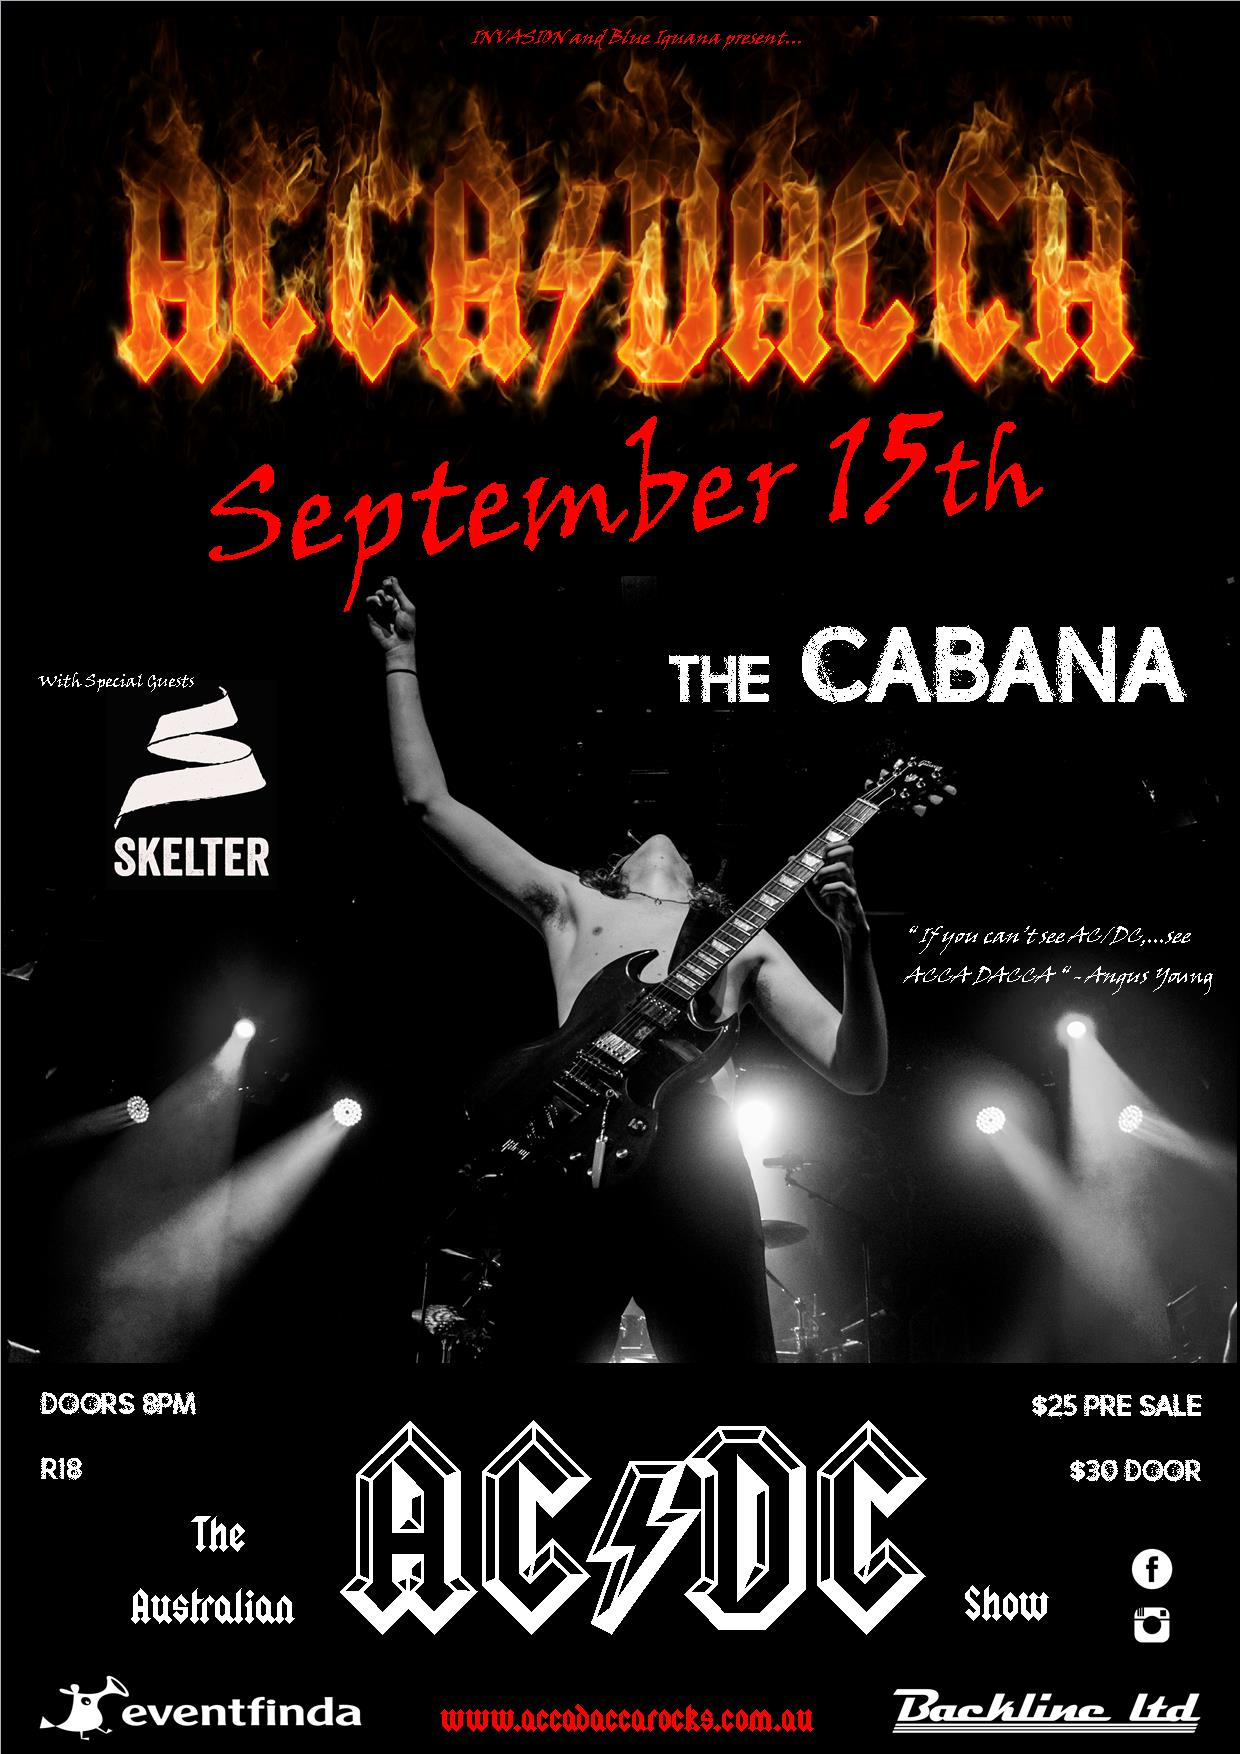 Acca Dacca - The Australian AC/DC Show With Skelter